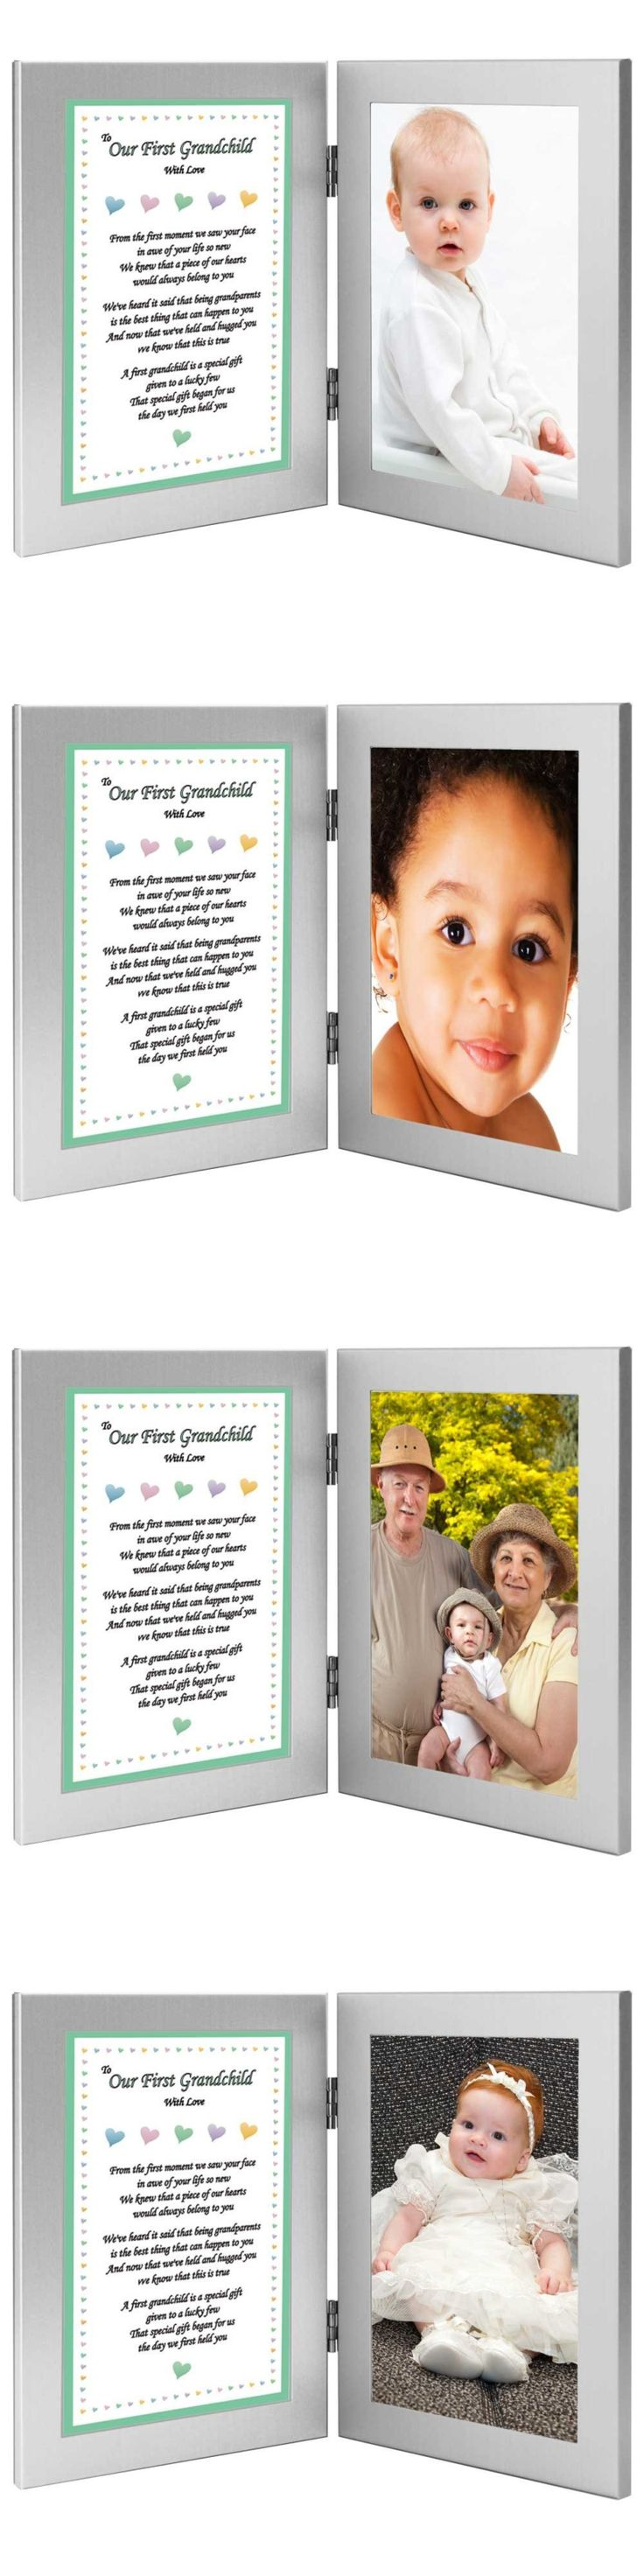 Baby Picture Frames 117392: To Our First Grandchild With Love - Sweet Poem From Grandparents In Double Frame -> BUY IT NOW ONLY: $37.27 on eBay!